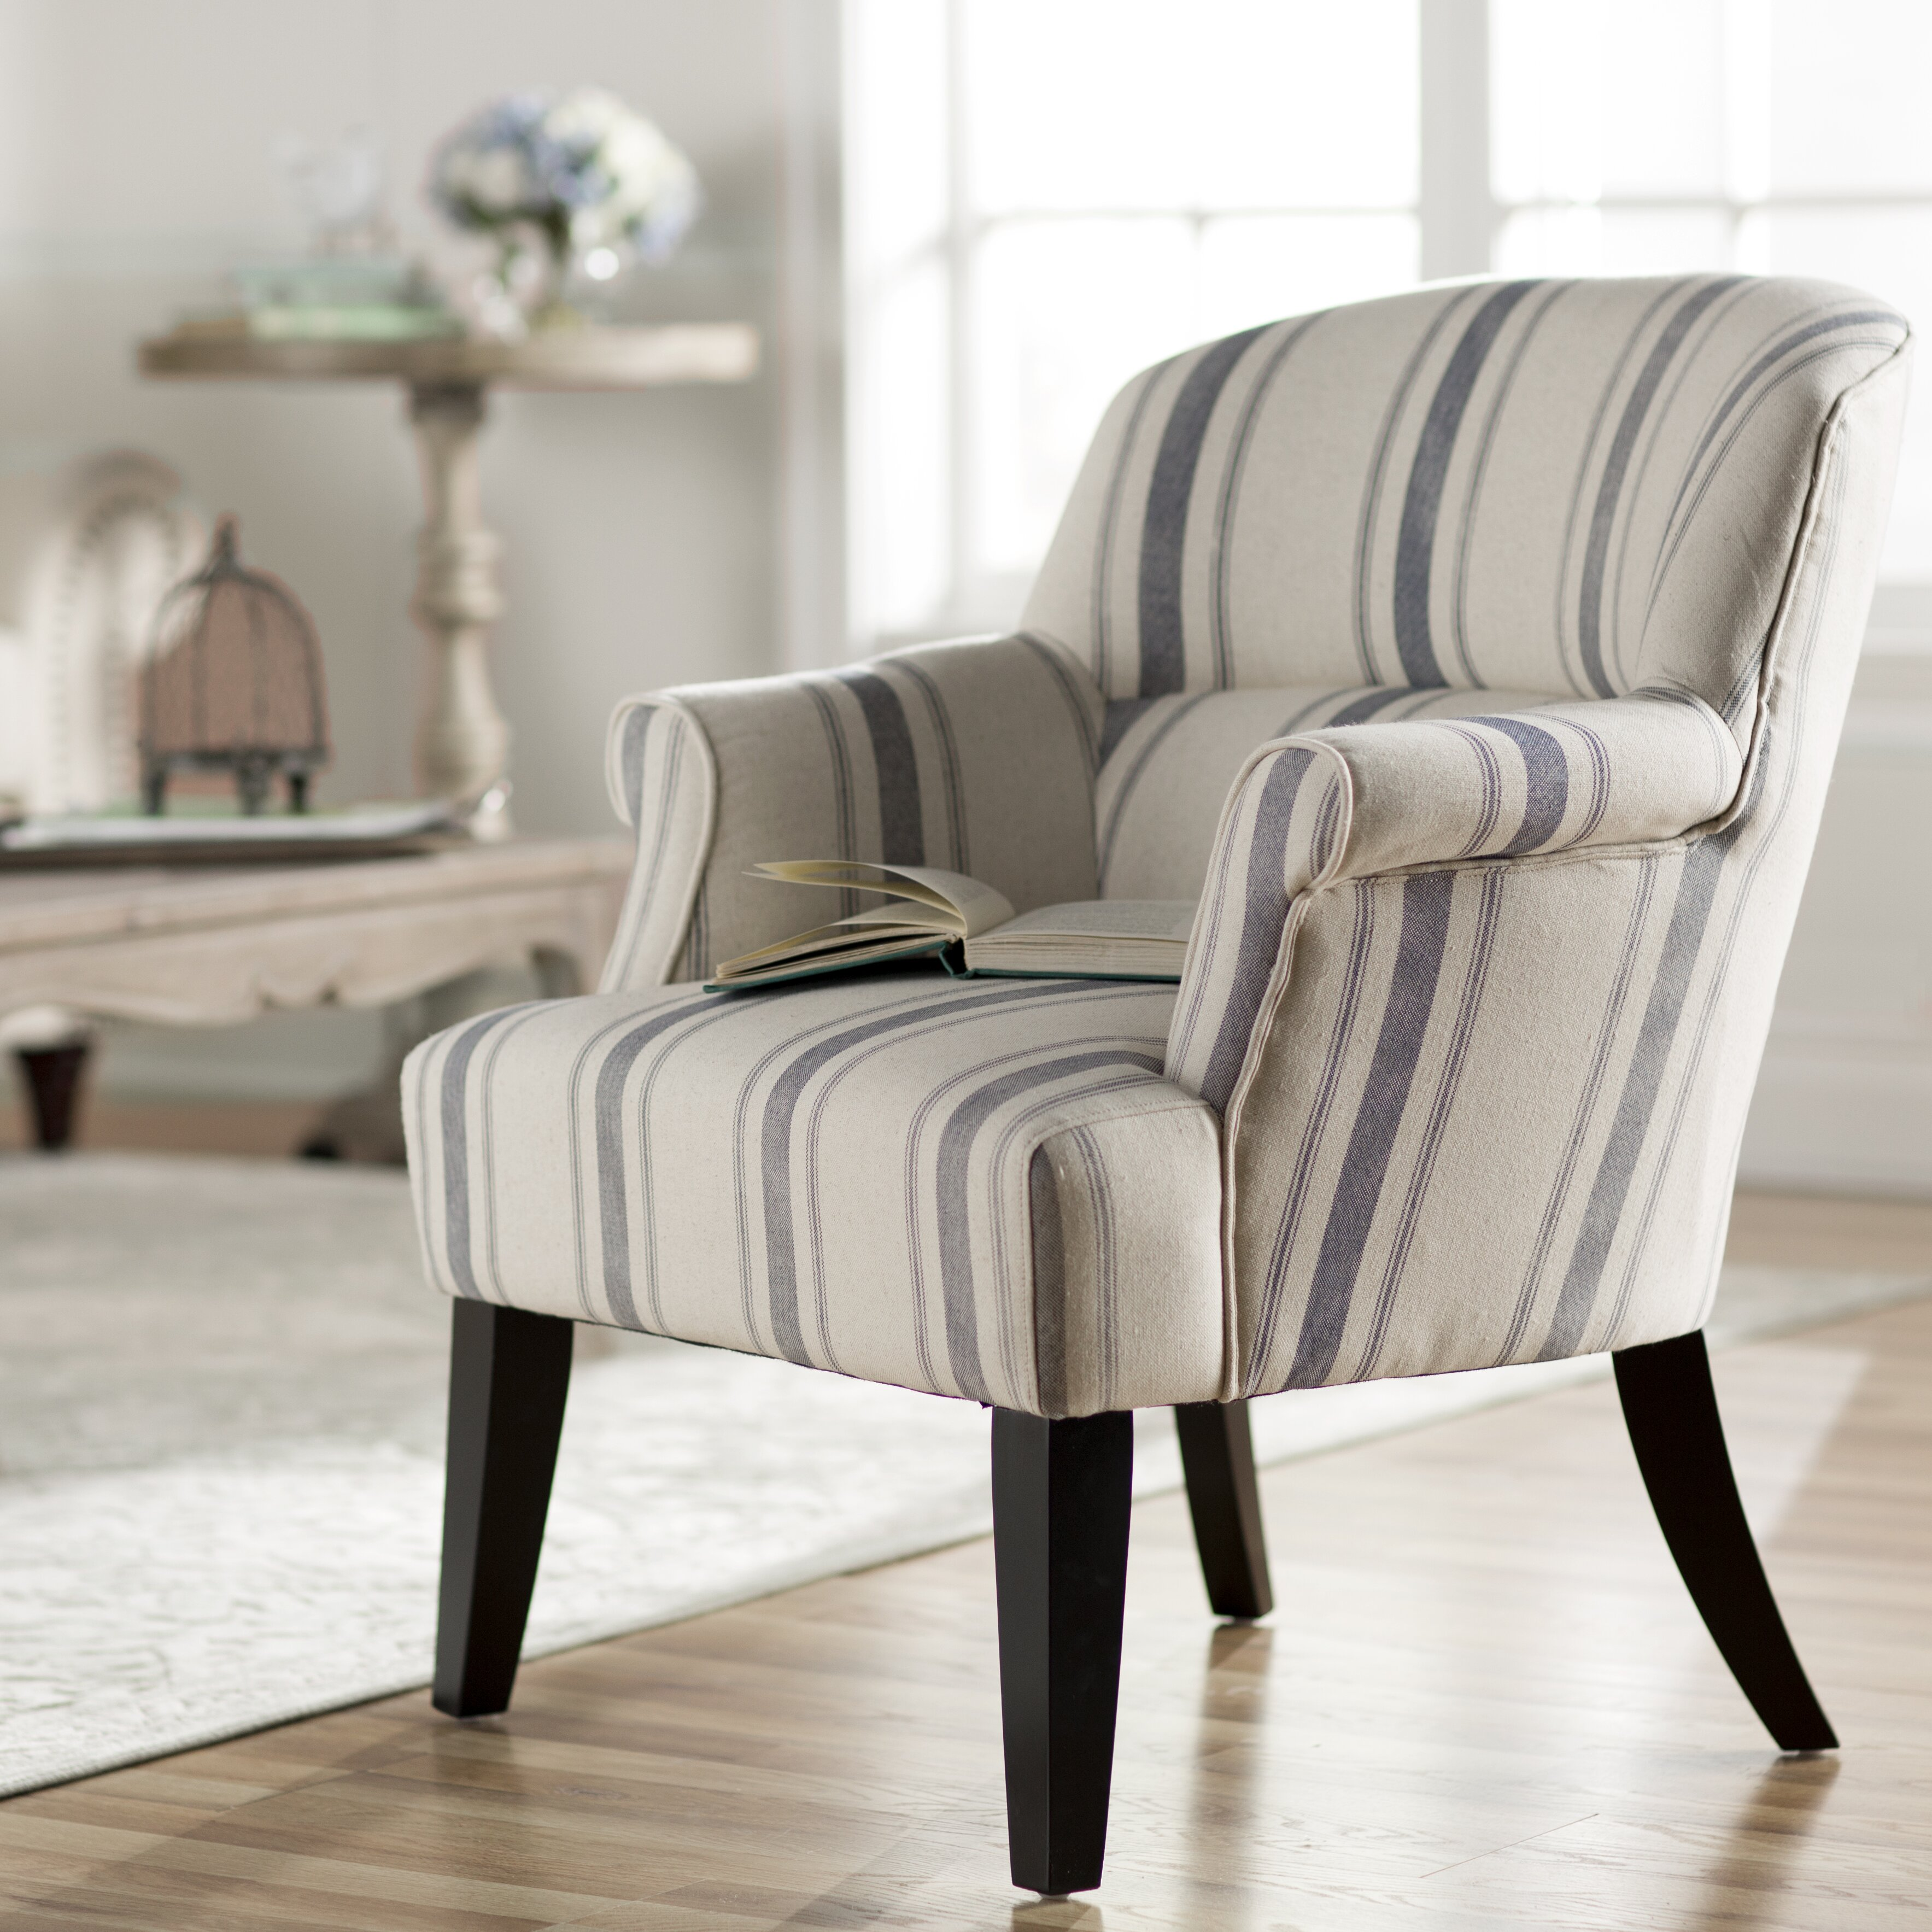 Cambridge Arm Chair Accent Chairs You ll Love Wayfair  Lease To Own Accent  Chairs Boston. Lease To Own Accent Chairs Boston   xtreme wheelz com